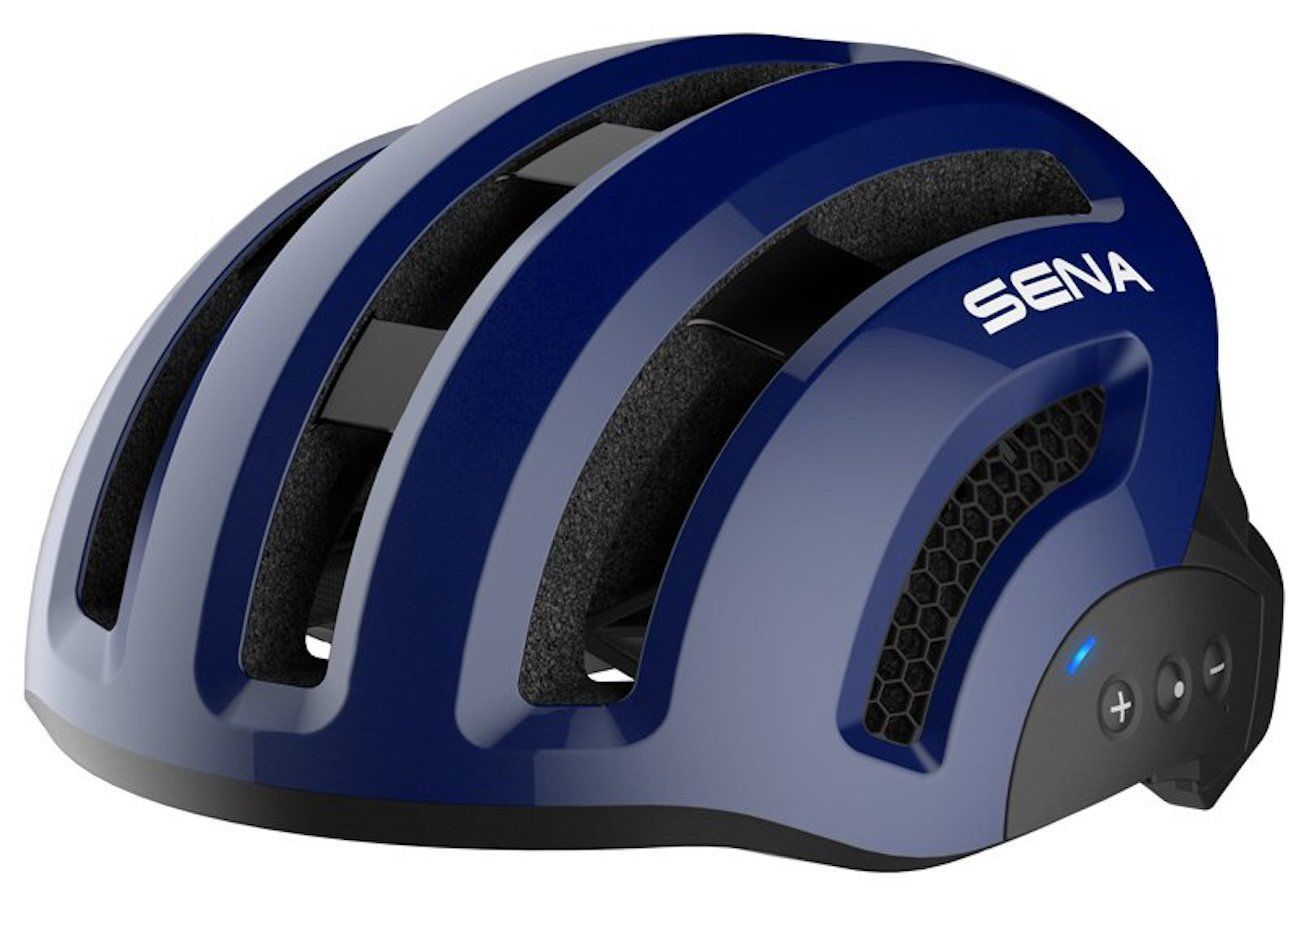 You've Got to See this Bluetooth-Connected Bike Helmet